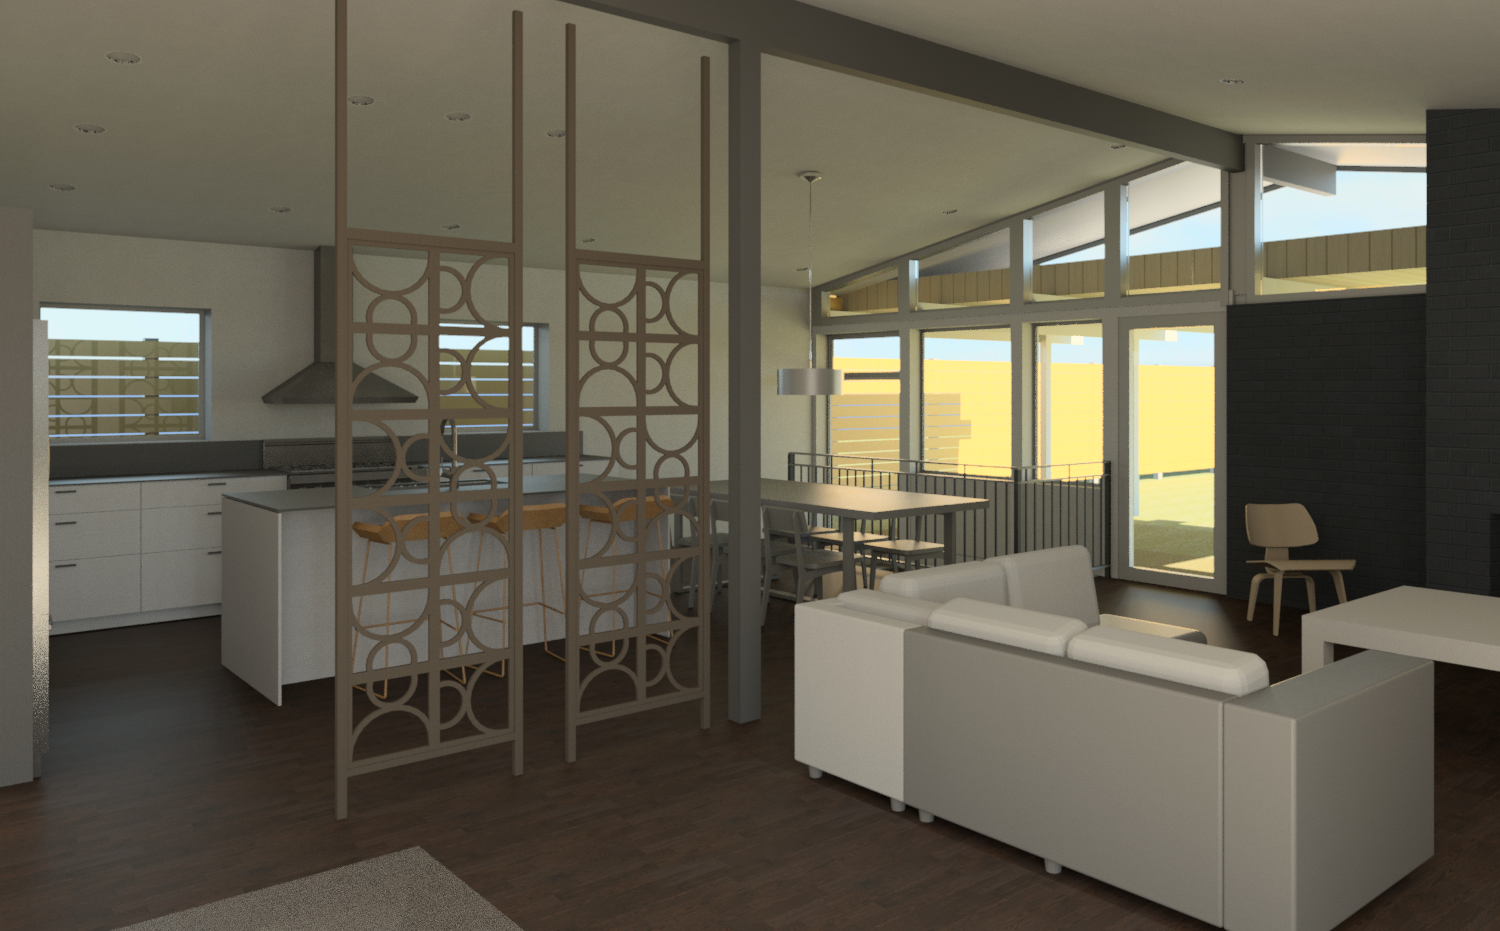 Dexter_Way.rvt_2013-Sep-24_12-05-18PM-000_3D_View_-_Foyer_to_Dining.png